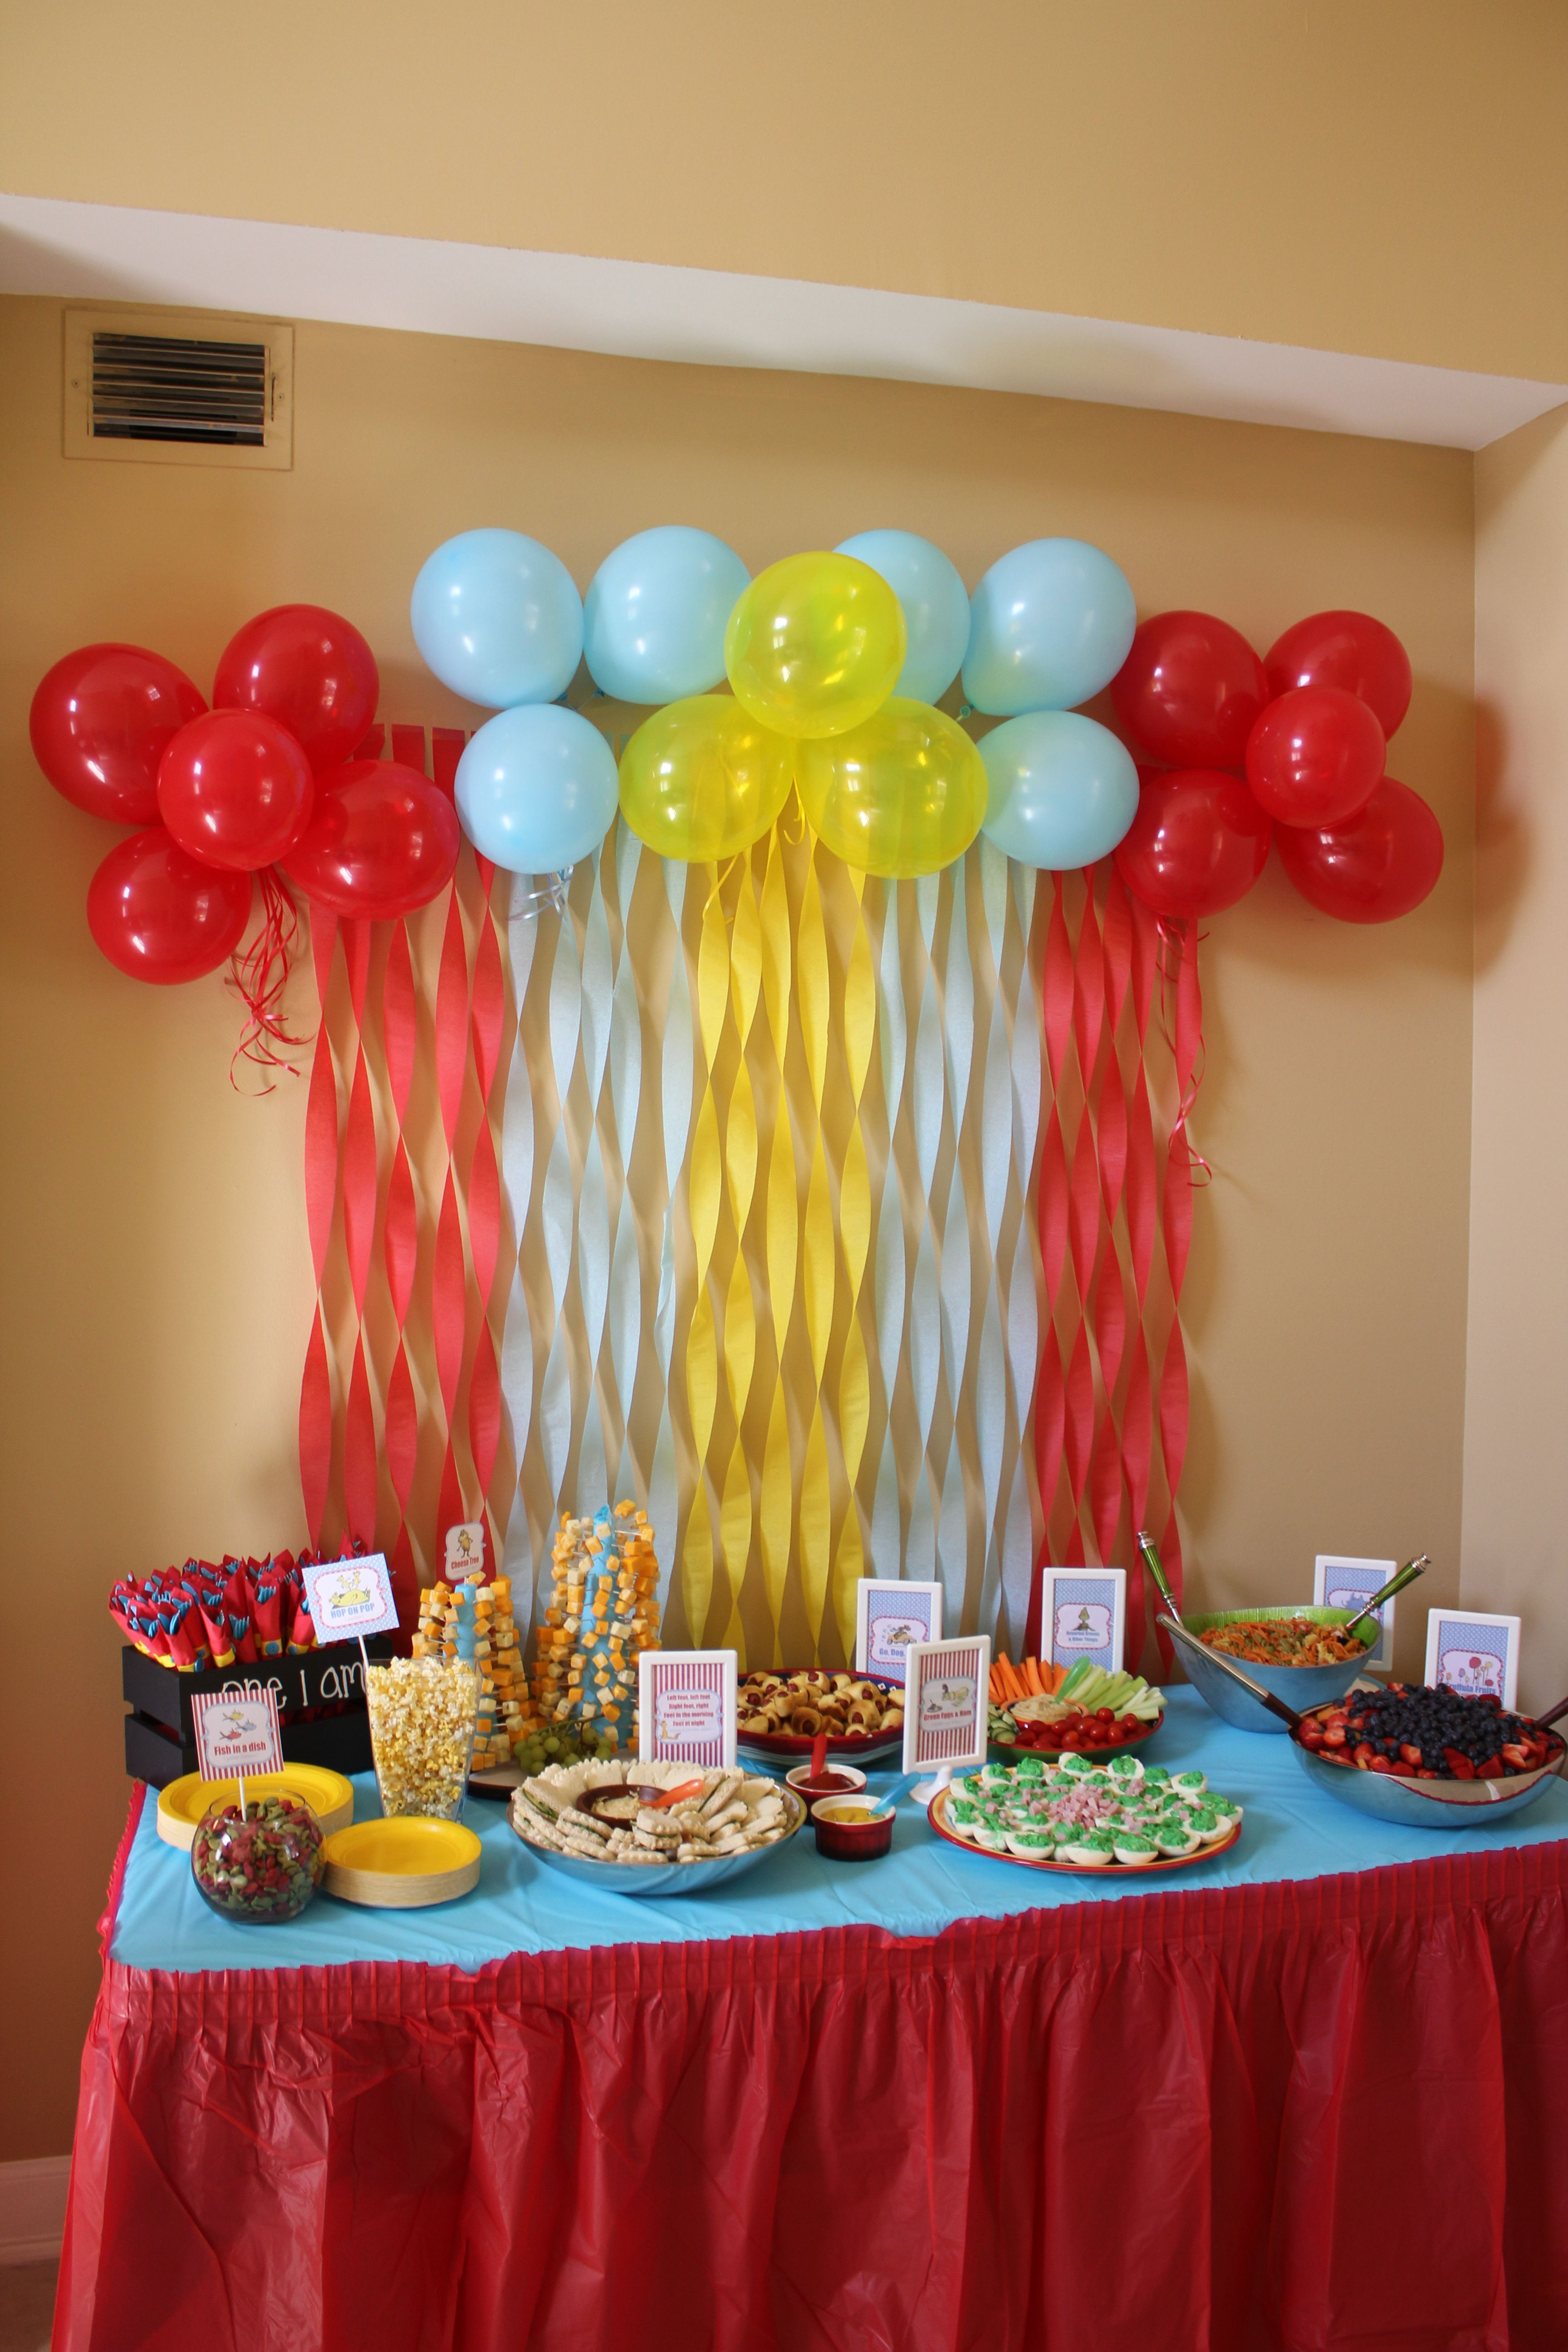 Items To Decorate Living Room: Here Was Our Food Table Decor From Matthew's 1st Birthday